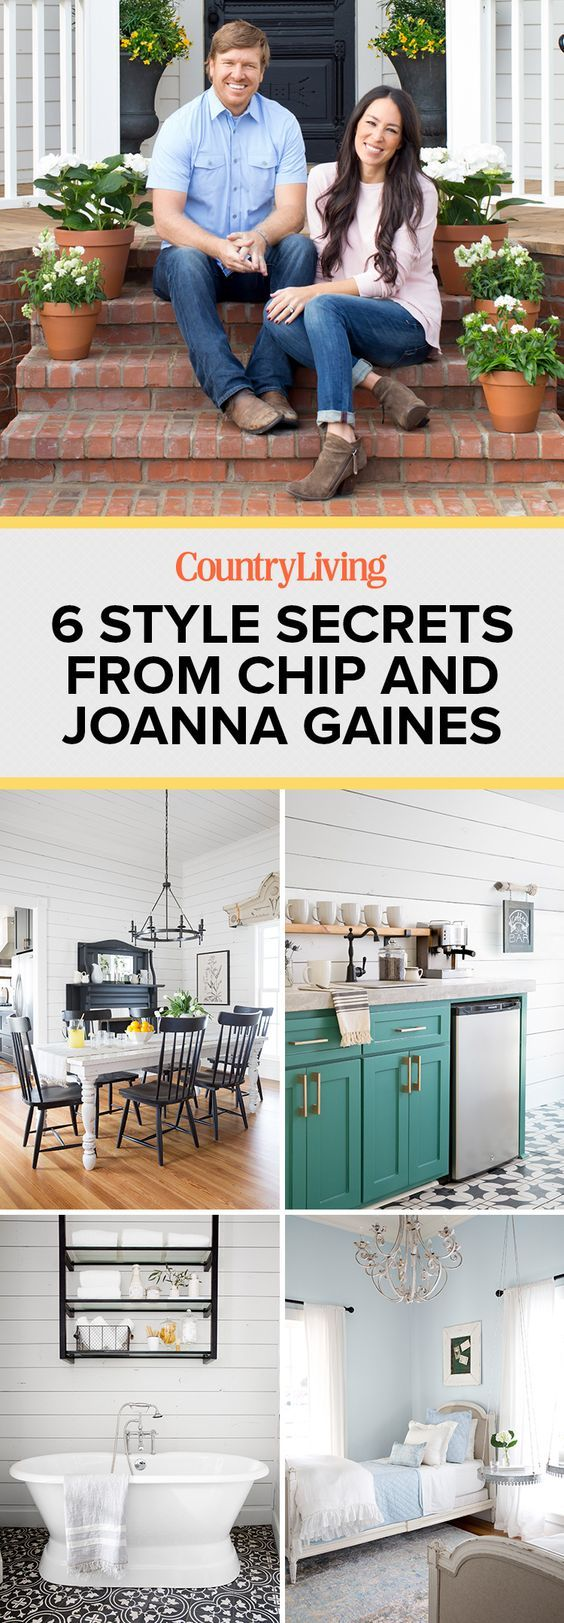 Joanna gaines magnolia house and chip and joanna gaines on pinterest